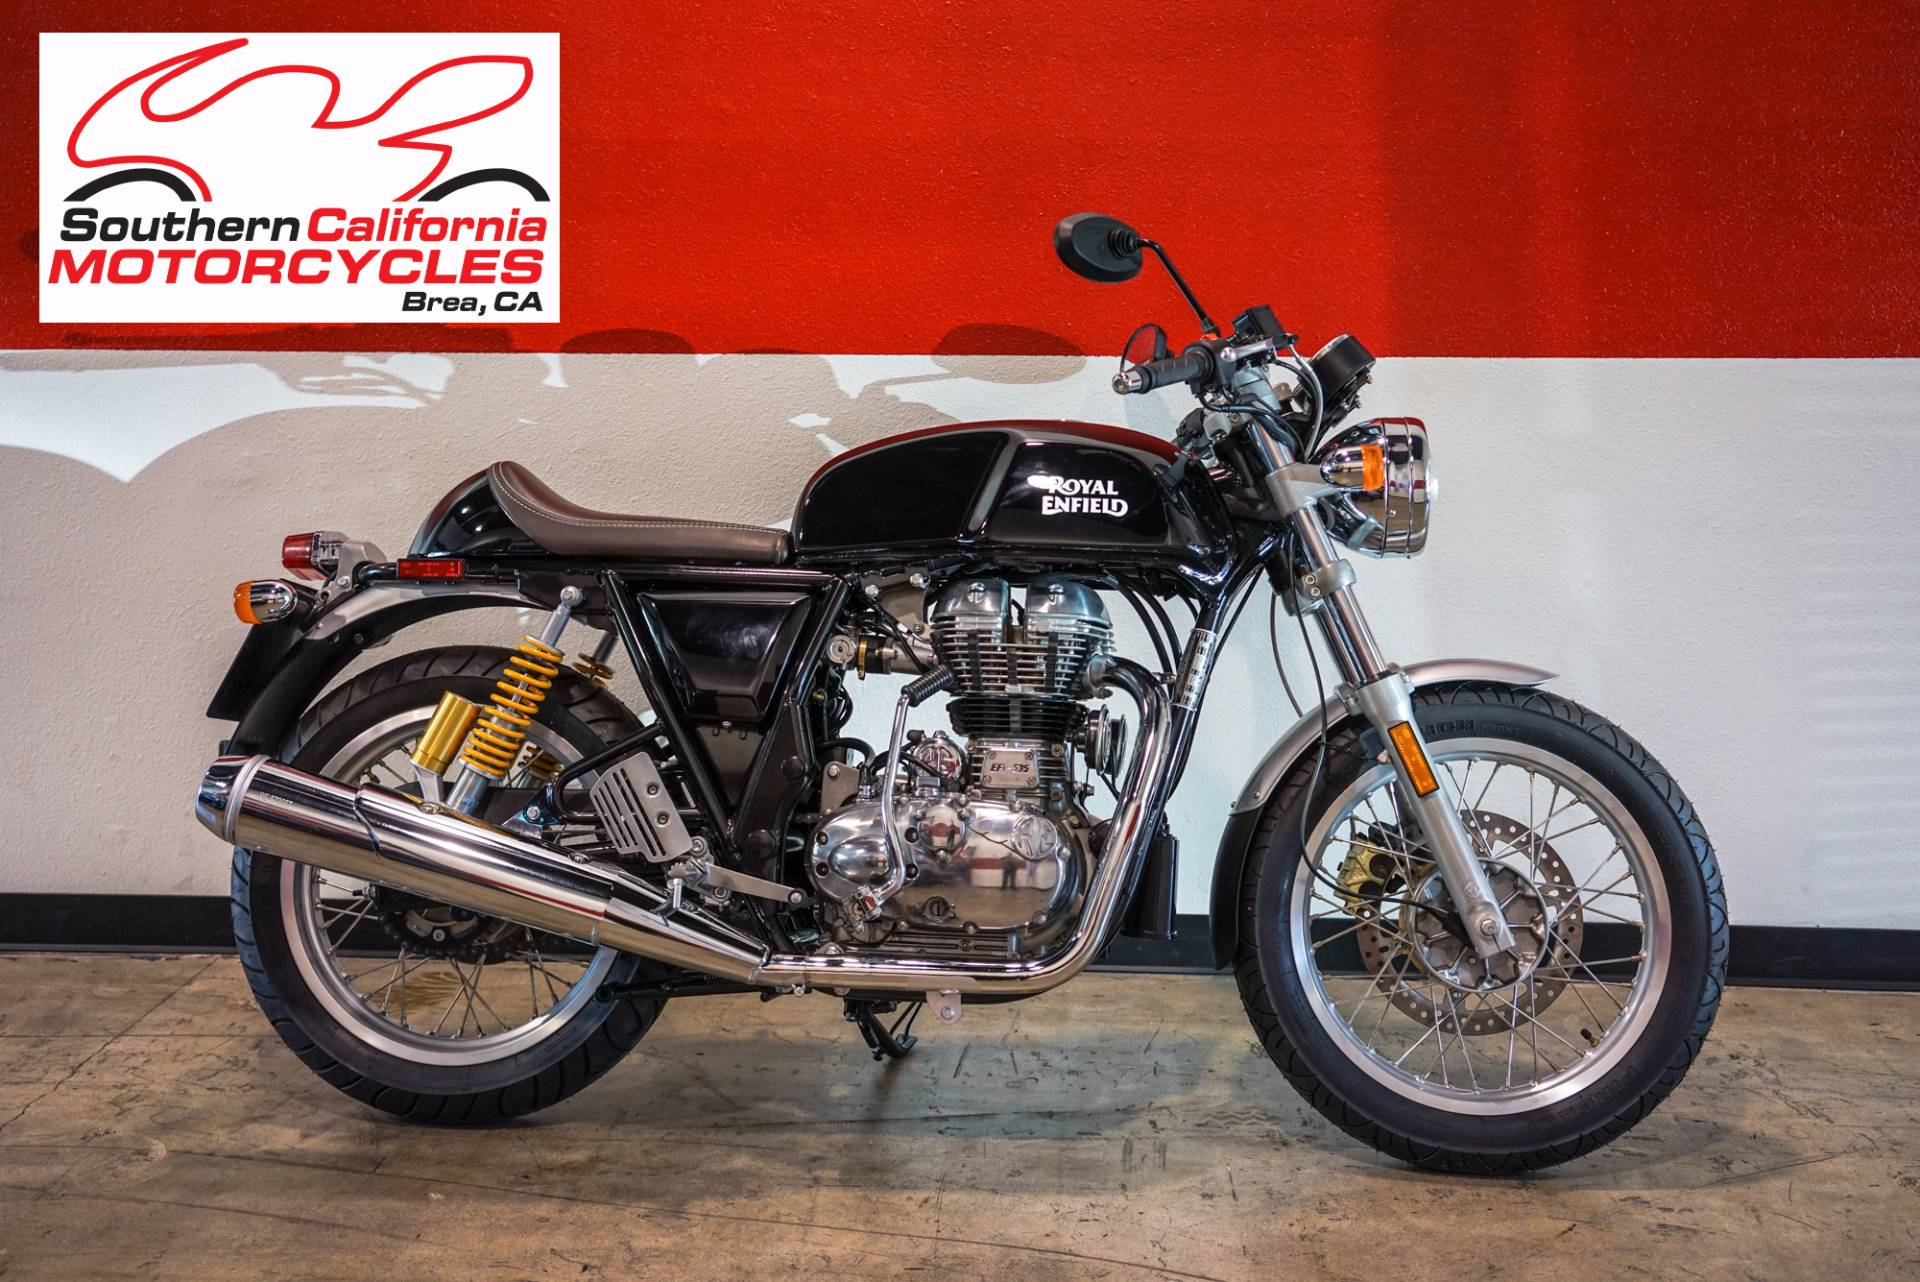 The Royal Enfield Continental GT is the lightest fastest most powerful Royal Enfield in producti